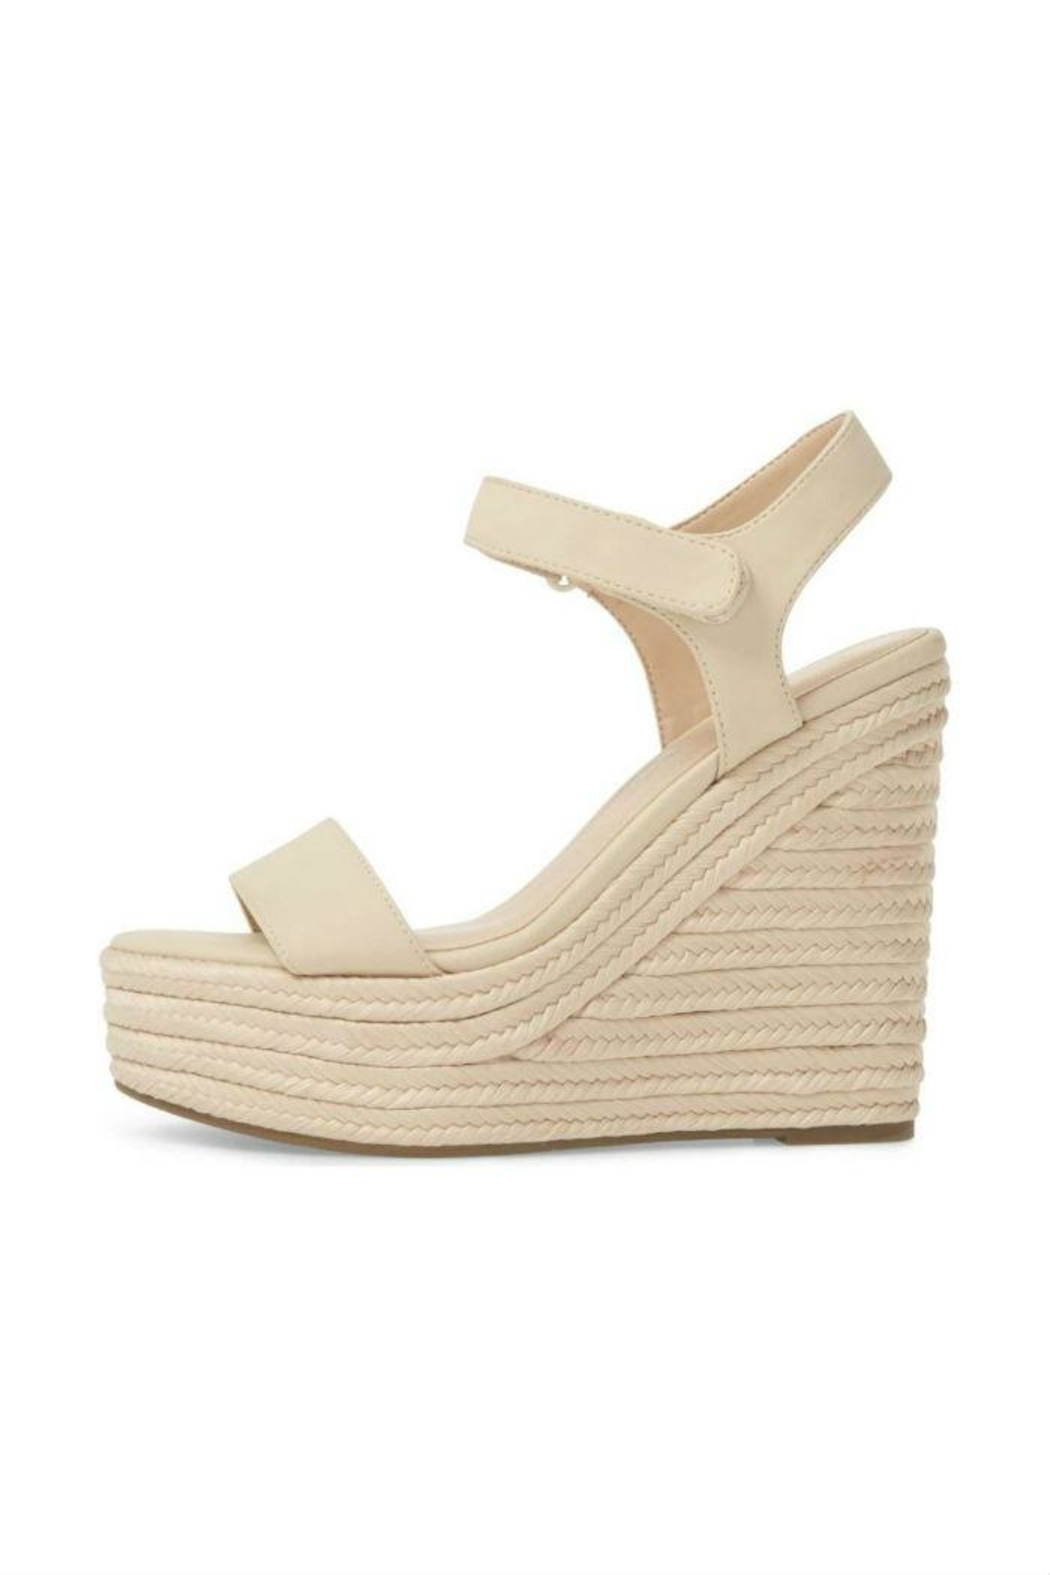 Kendall + Kylie Grand Wedge Sandal - Main Image